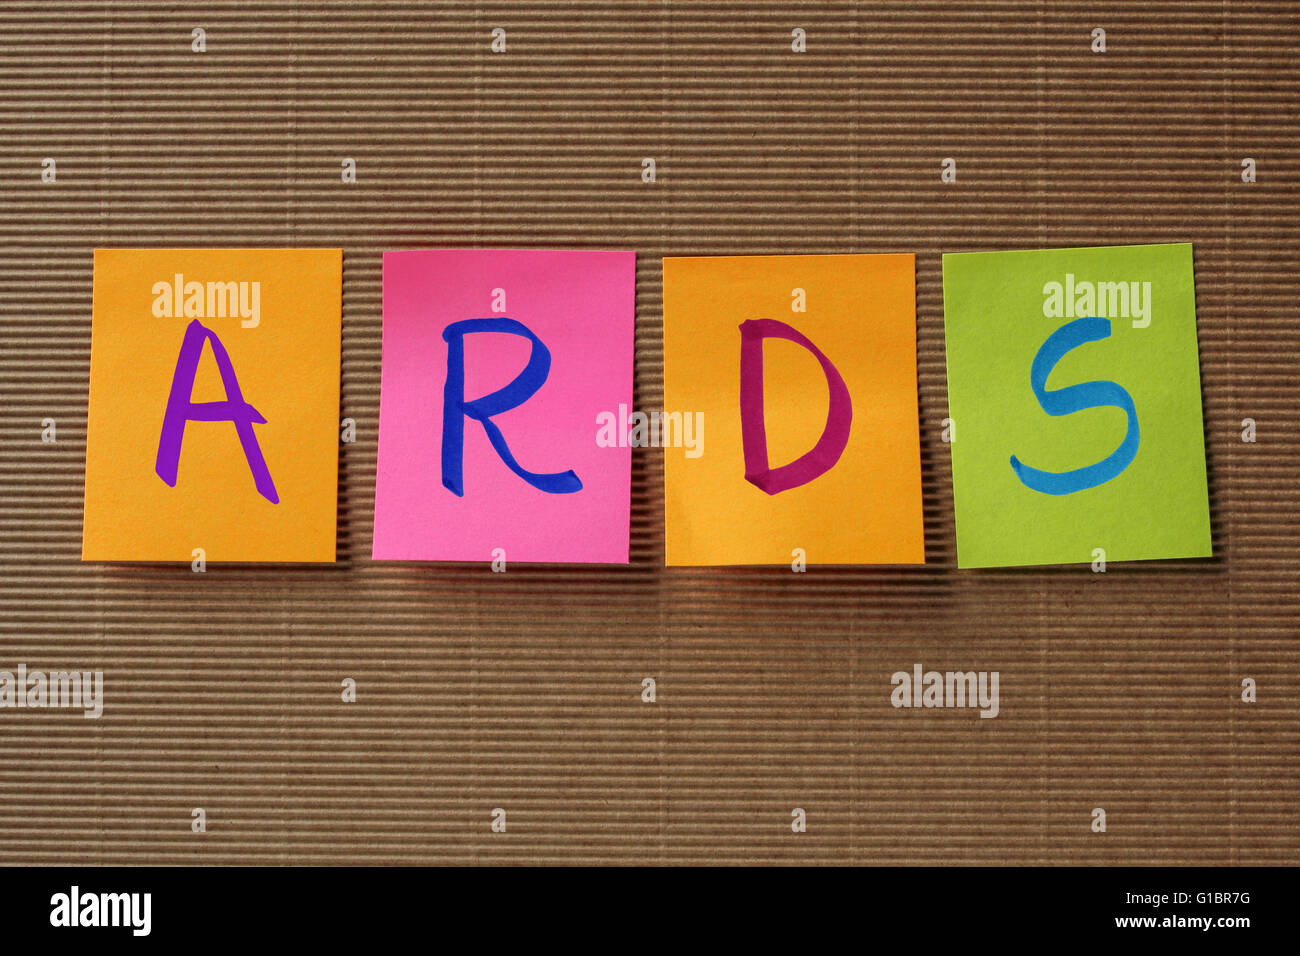 BPD (Borderline Personality Disorder) acronym on colorful sticky notes - Stock Image